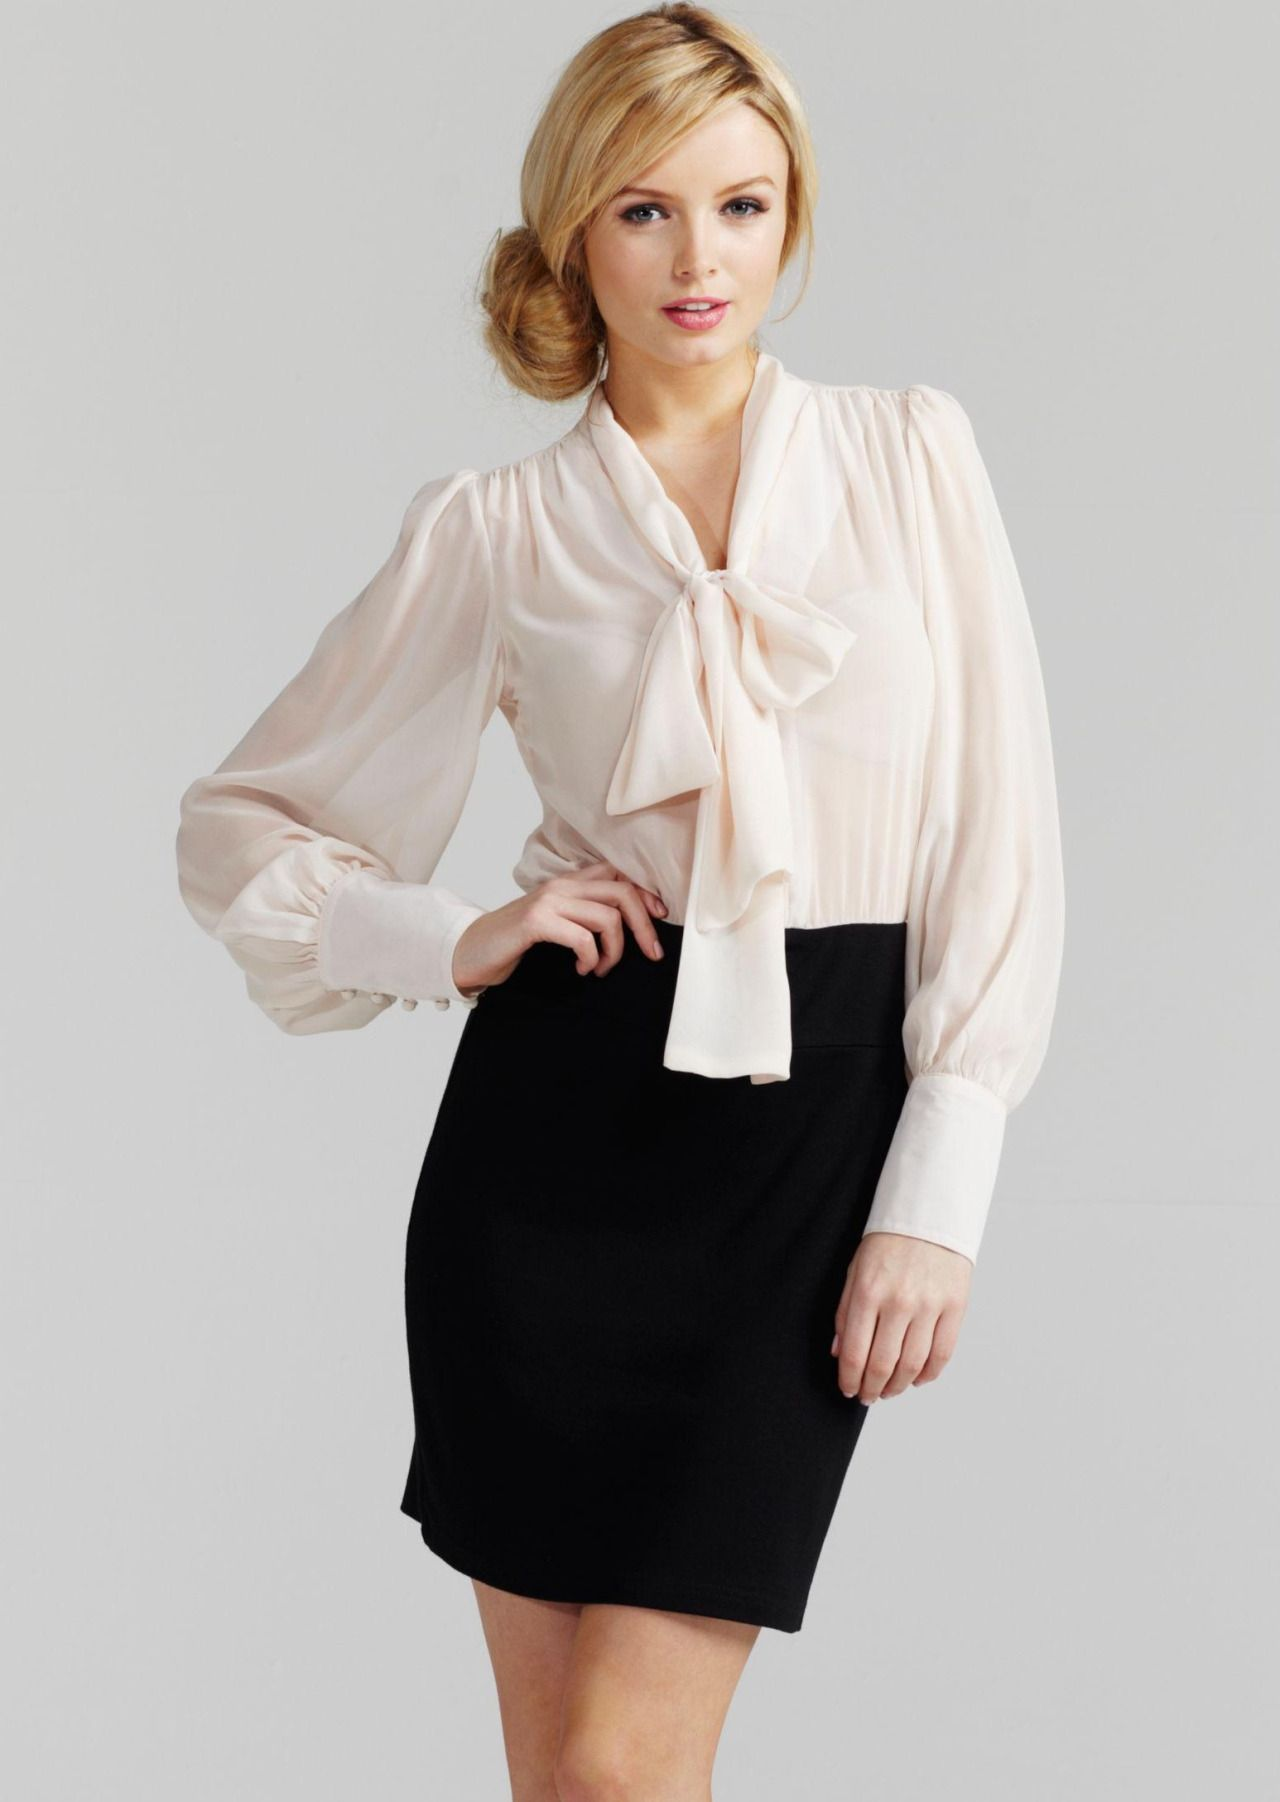 Sexy blouse and skirt